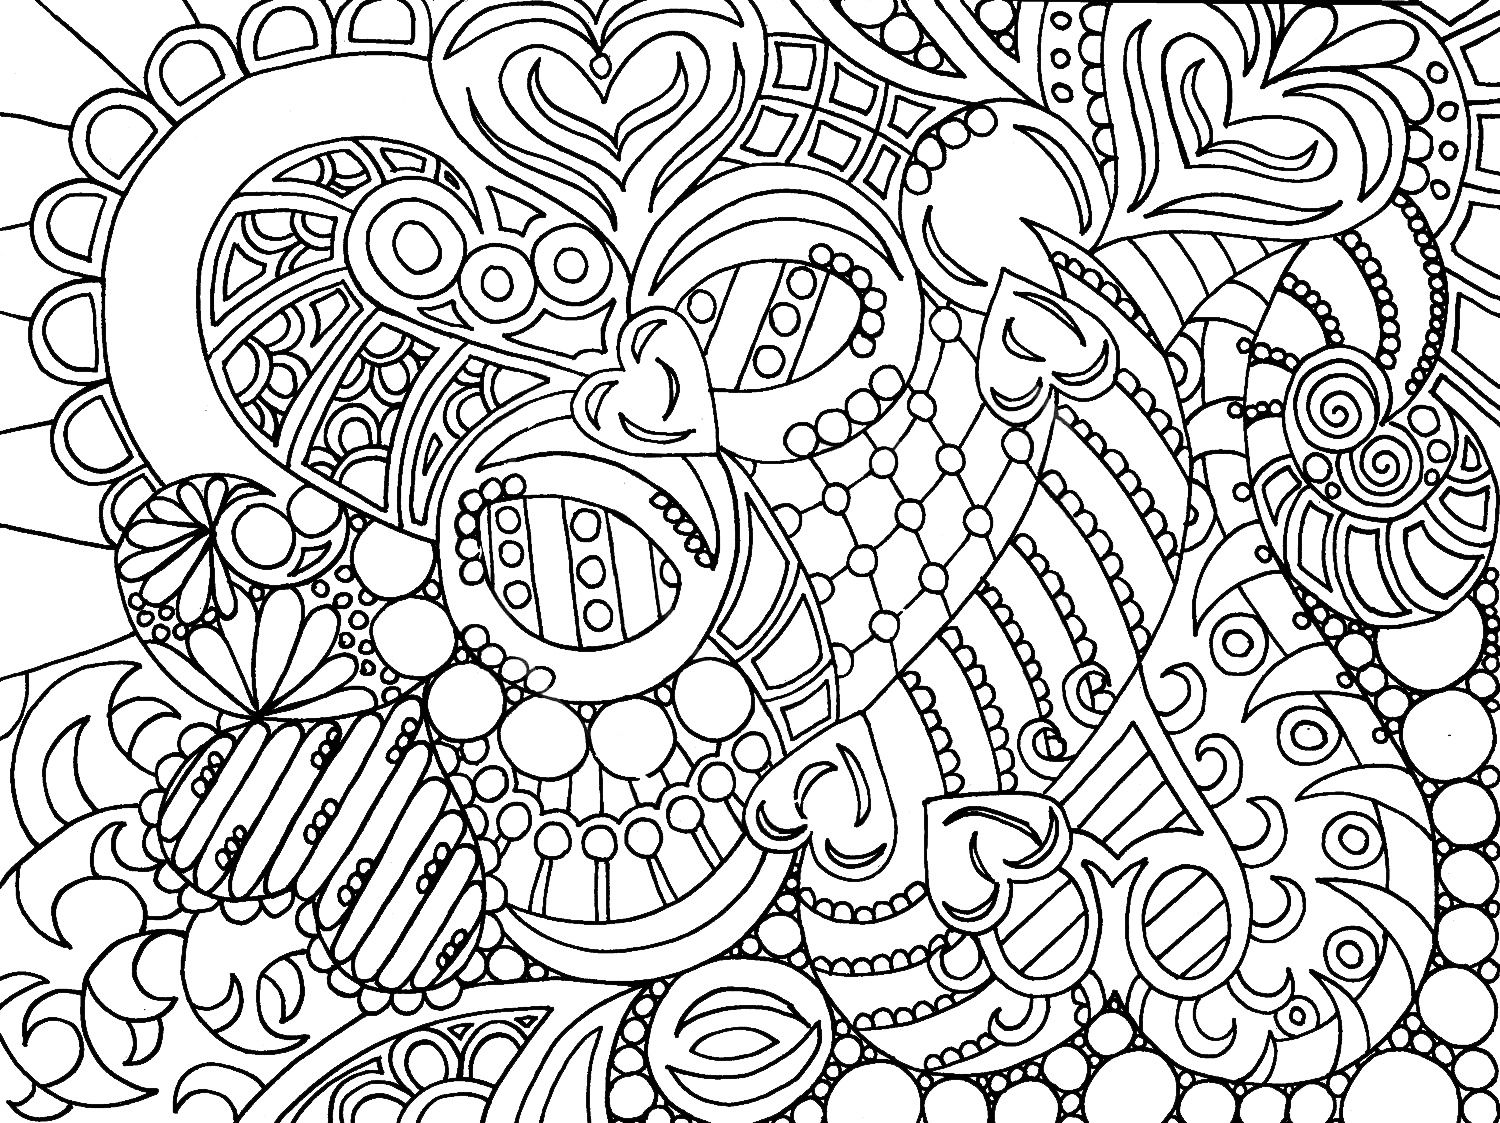 Coloring pages to print designs - Find This Pin And More On Coloring Free Printable Adult Colouring Pages